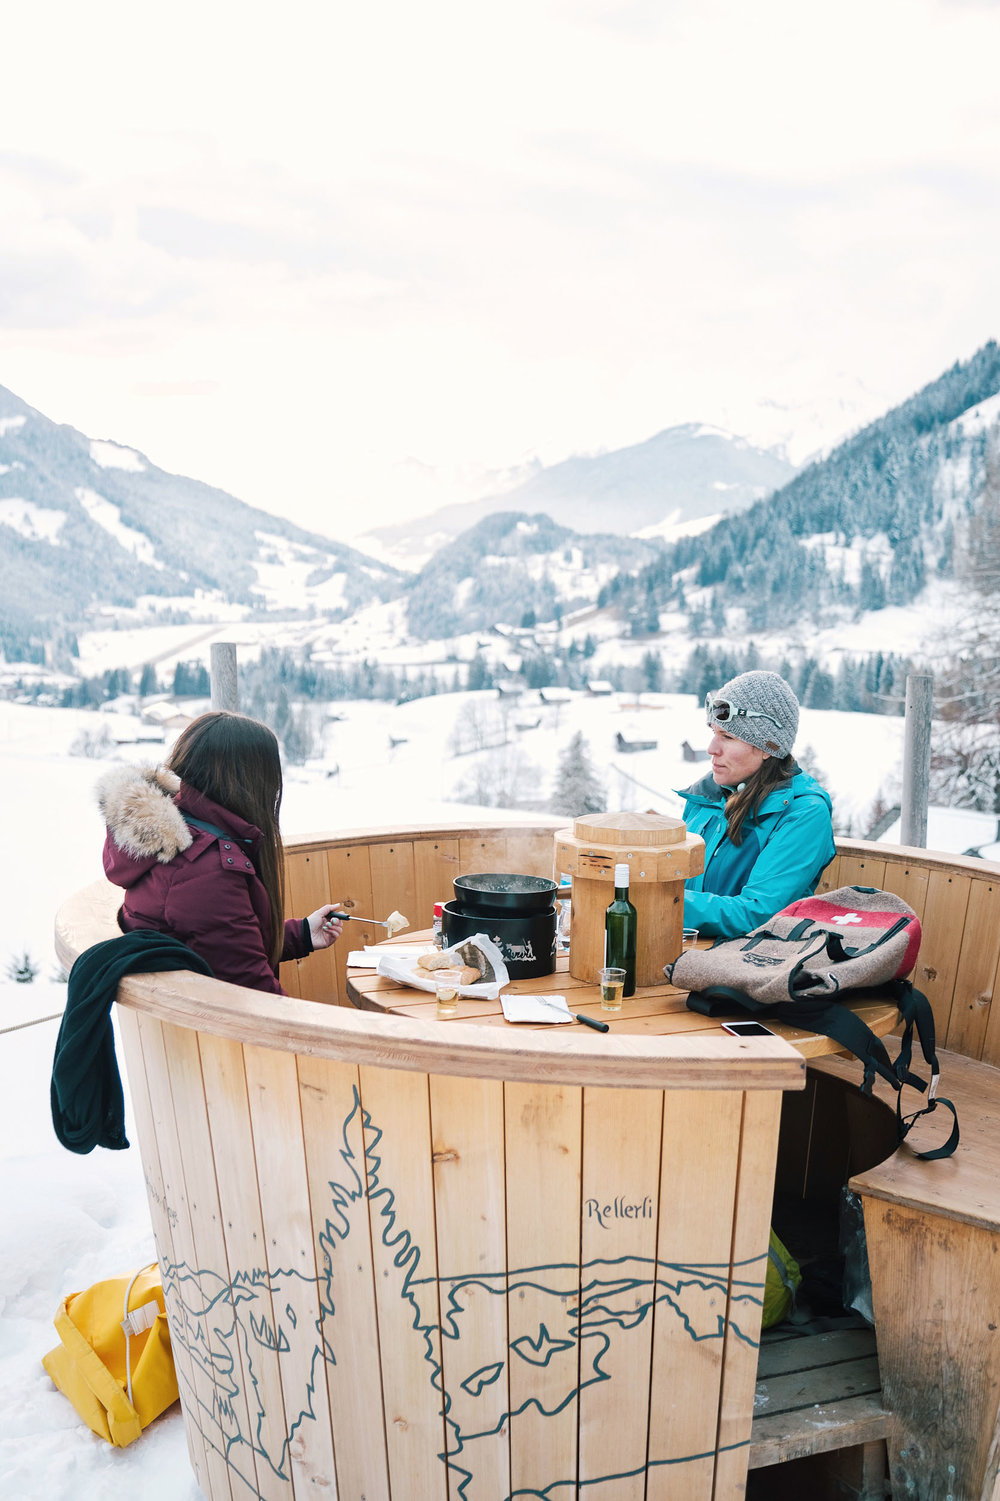 Gstaad is home to three large fondue pots, each with room for up to eight people, and one specially designed hut which also fits up to 8.